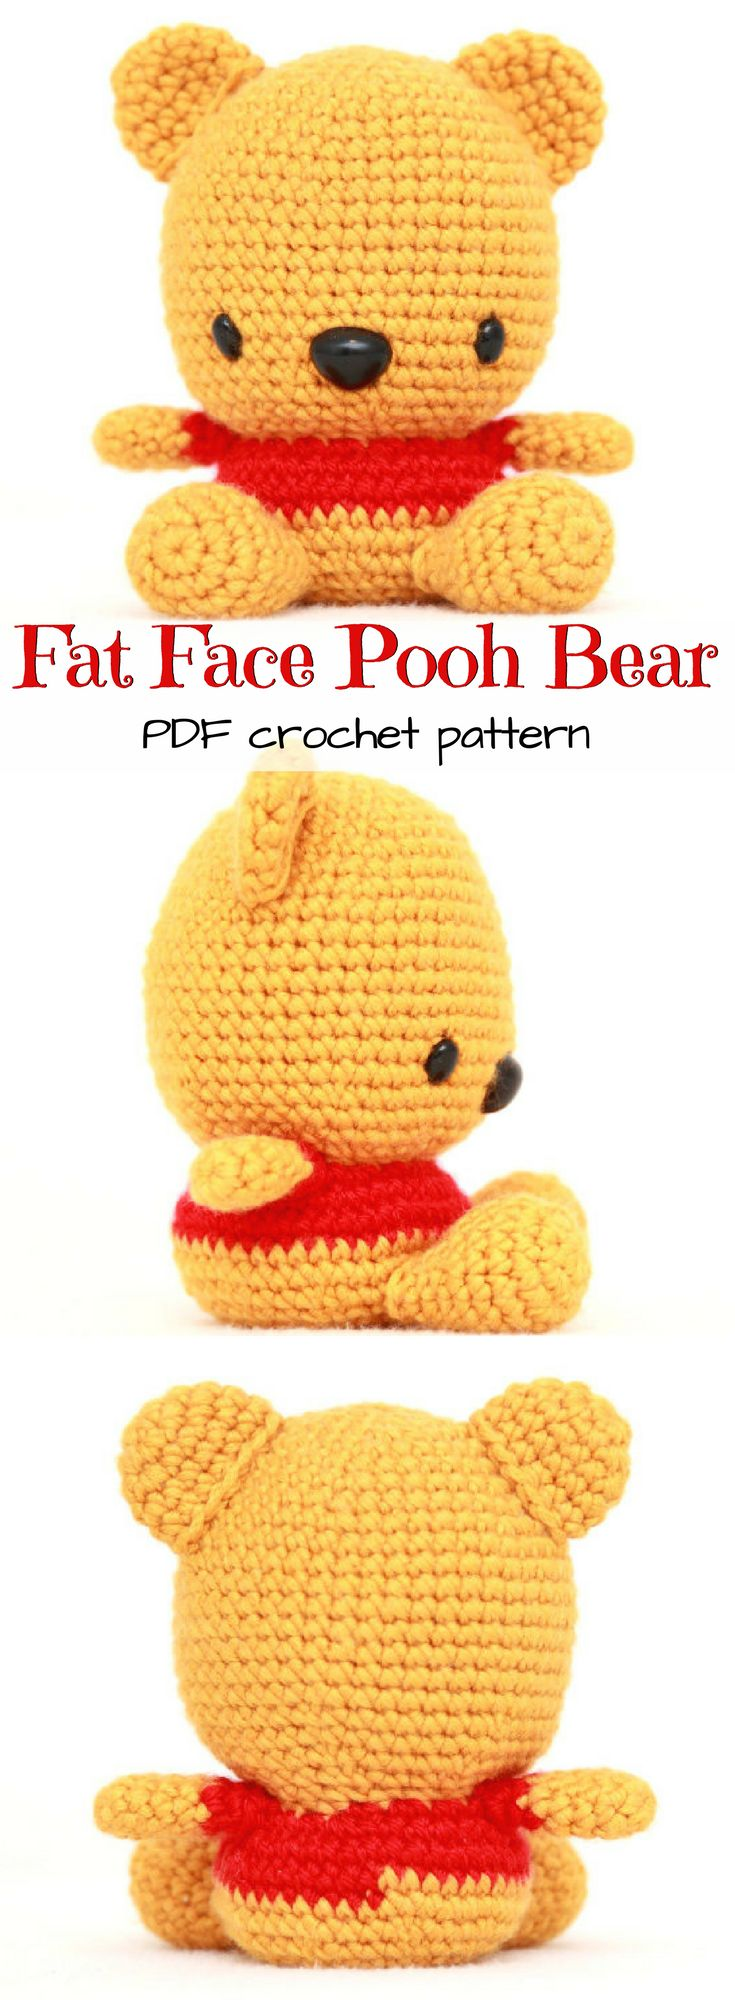 Eek! What an adorable amigurumi crochet pattern for Winnie the Pooh! I love his big head! And there are other patterns for the other characters, too: Tigger, Eeyore, & Piglet! Love these cute DIY stuffed animals! #etsy #ad #disney